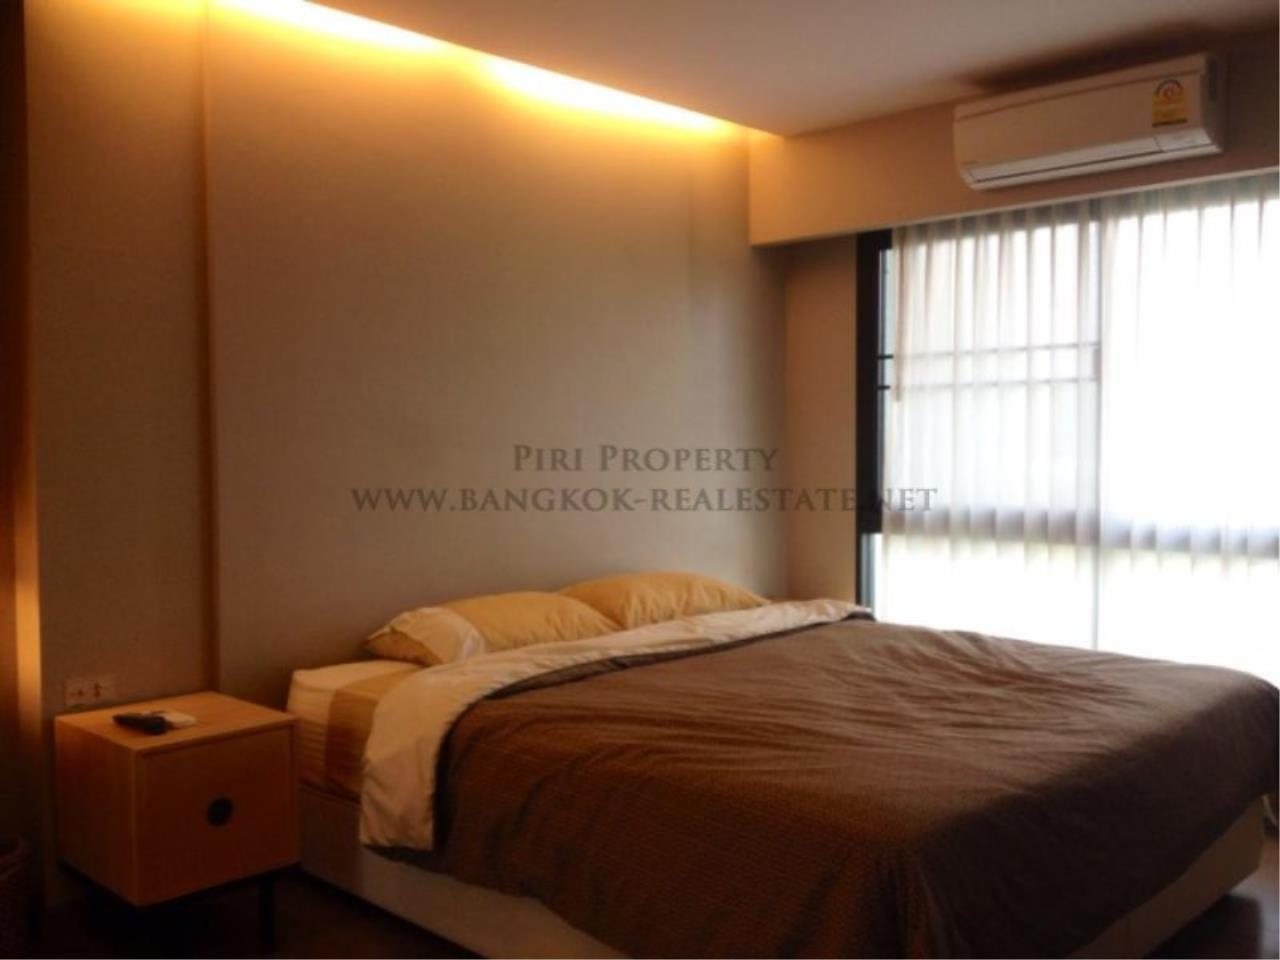 Piri Property Agency's Nice 1 Bedroom Condo in Thonglor for Rent - Tidy Thonglor 1